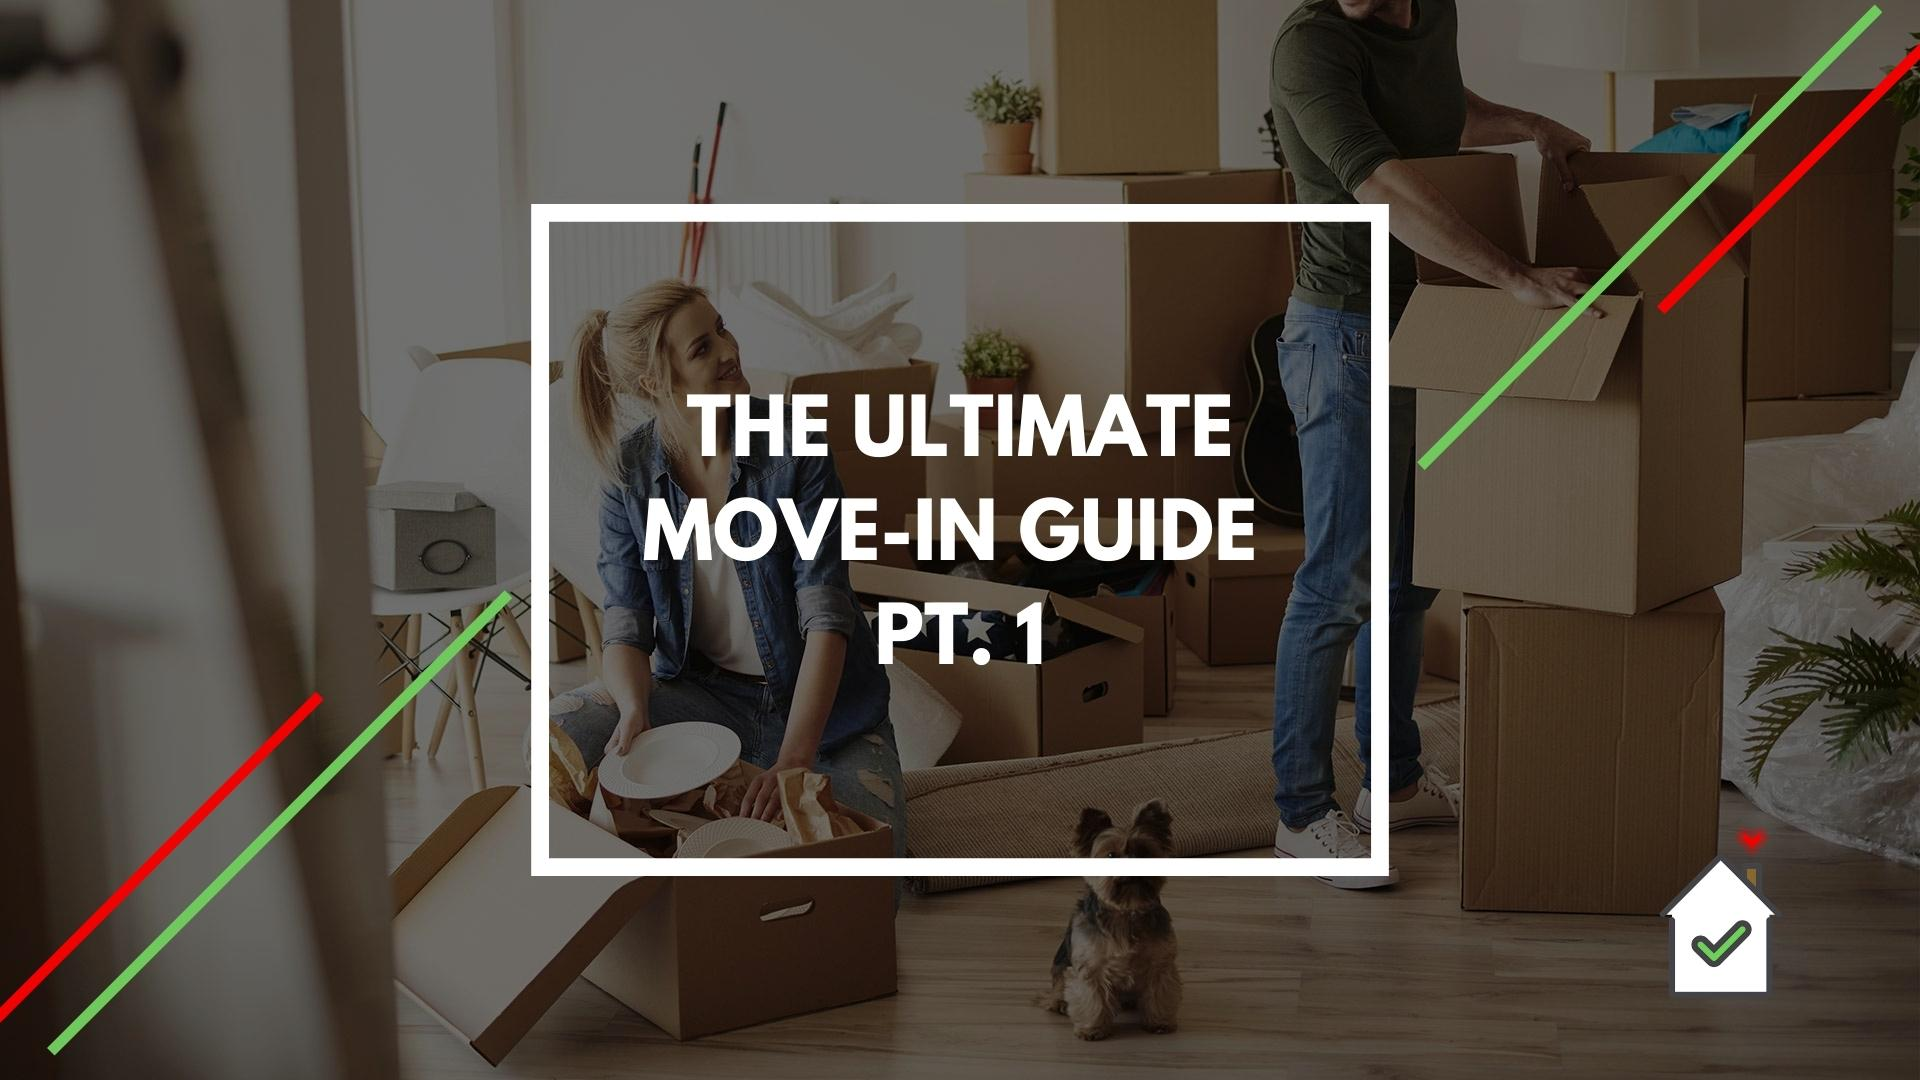 6-tenant-report-the-ultimate-move-in-guide-pt1